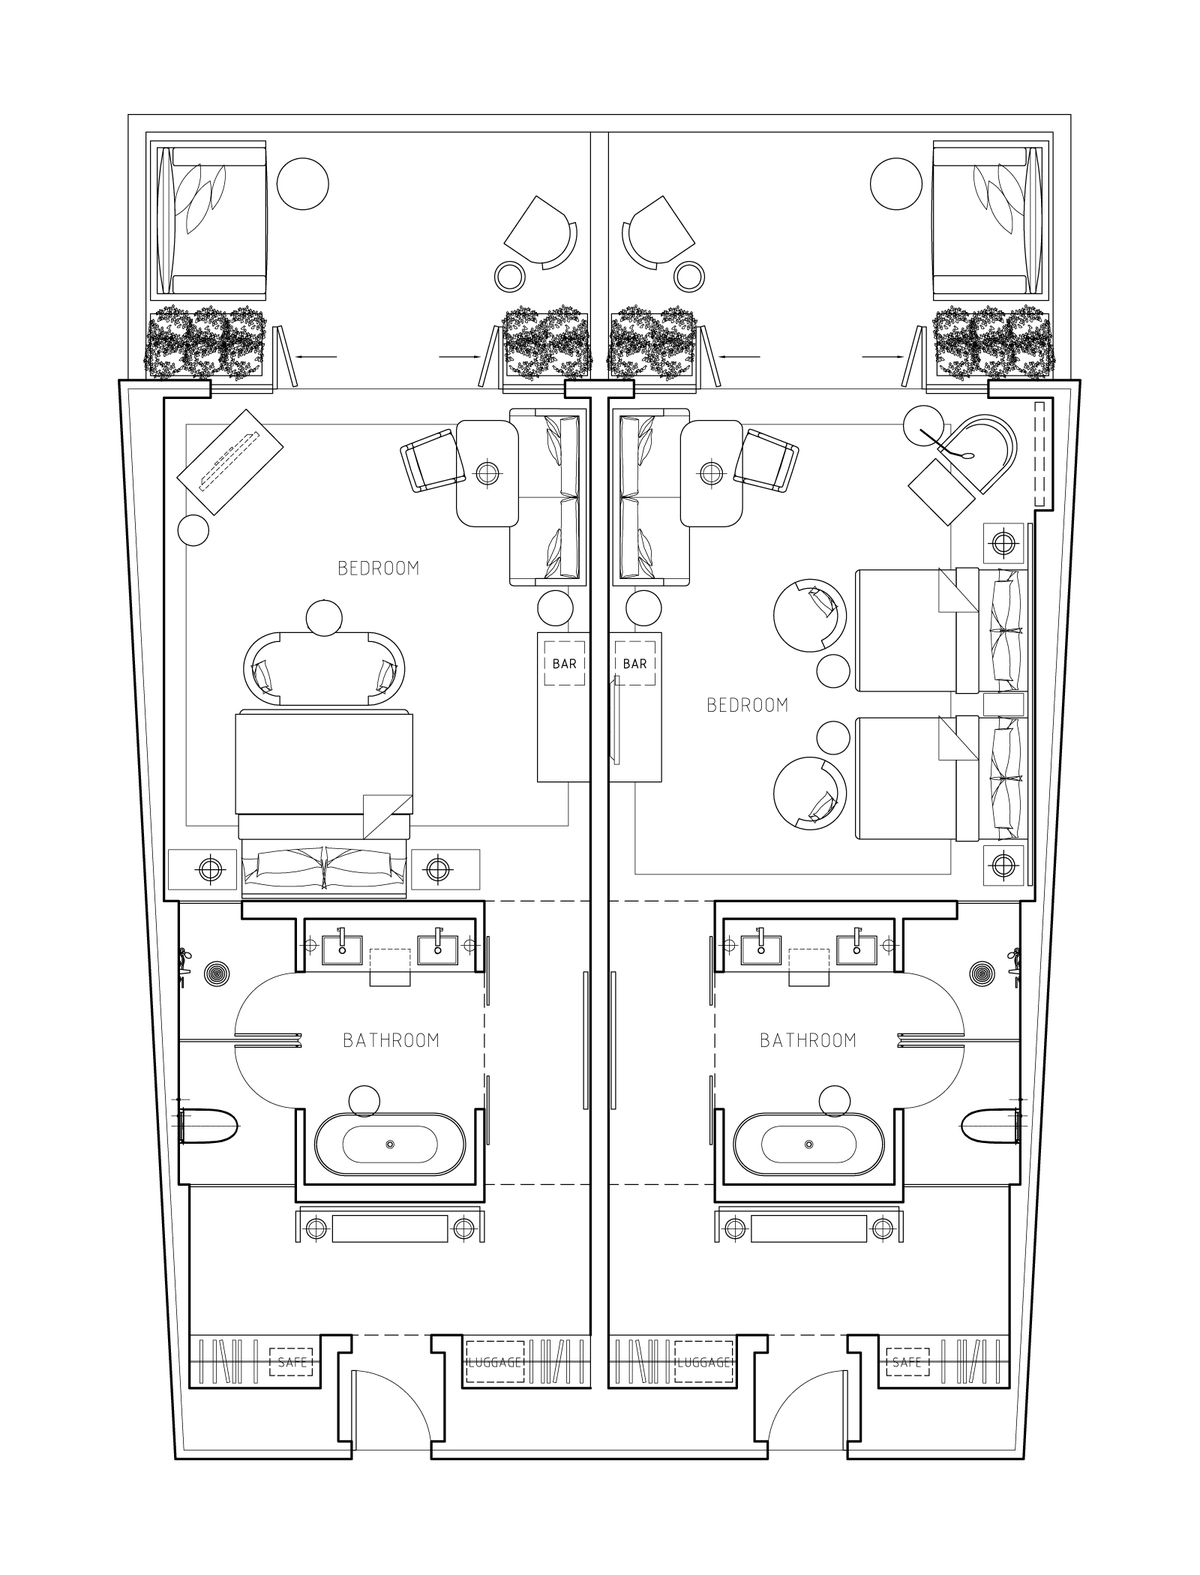 1000 images about space planing layout on pinterest for Hotel plan design